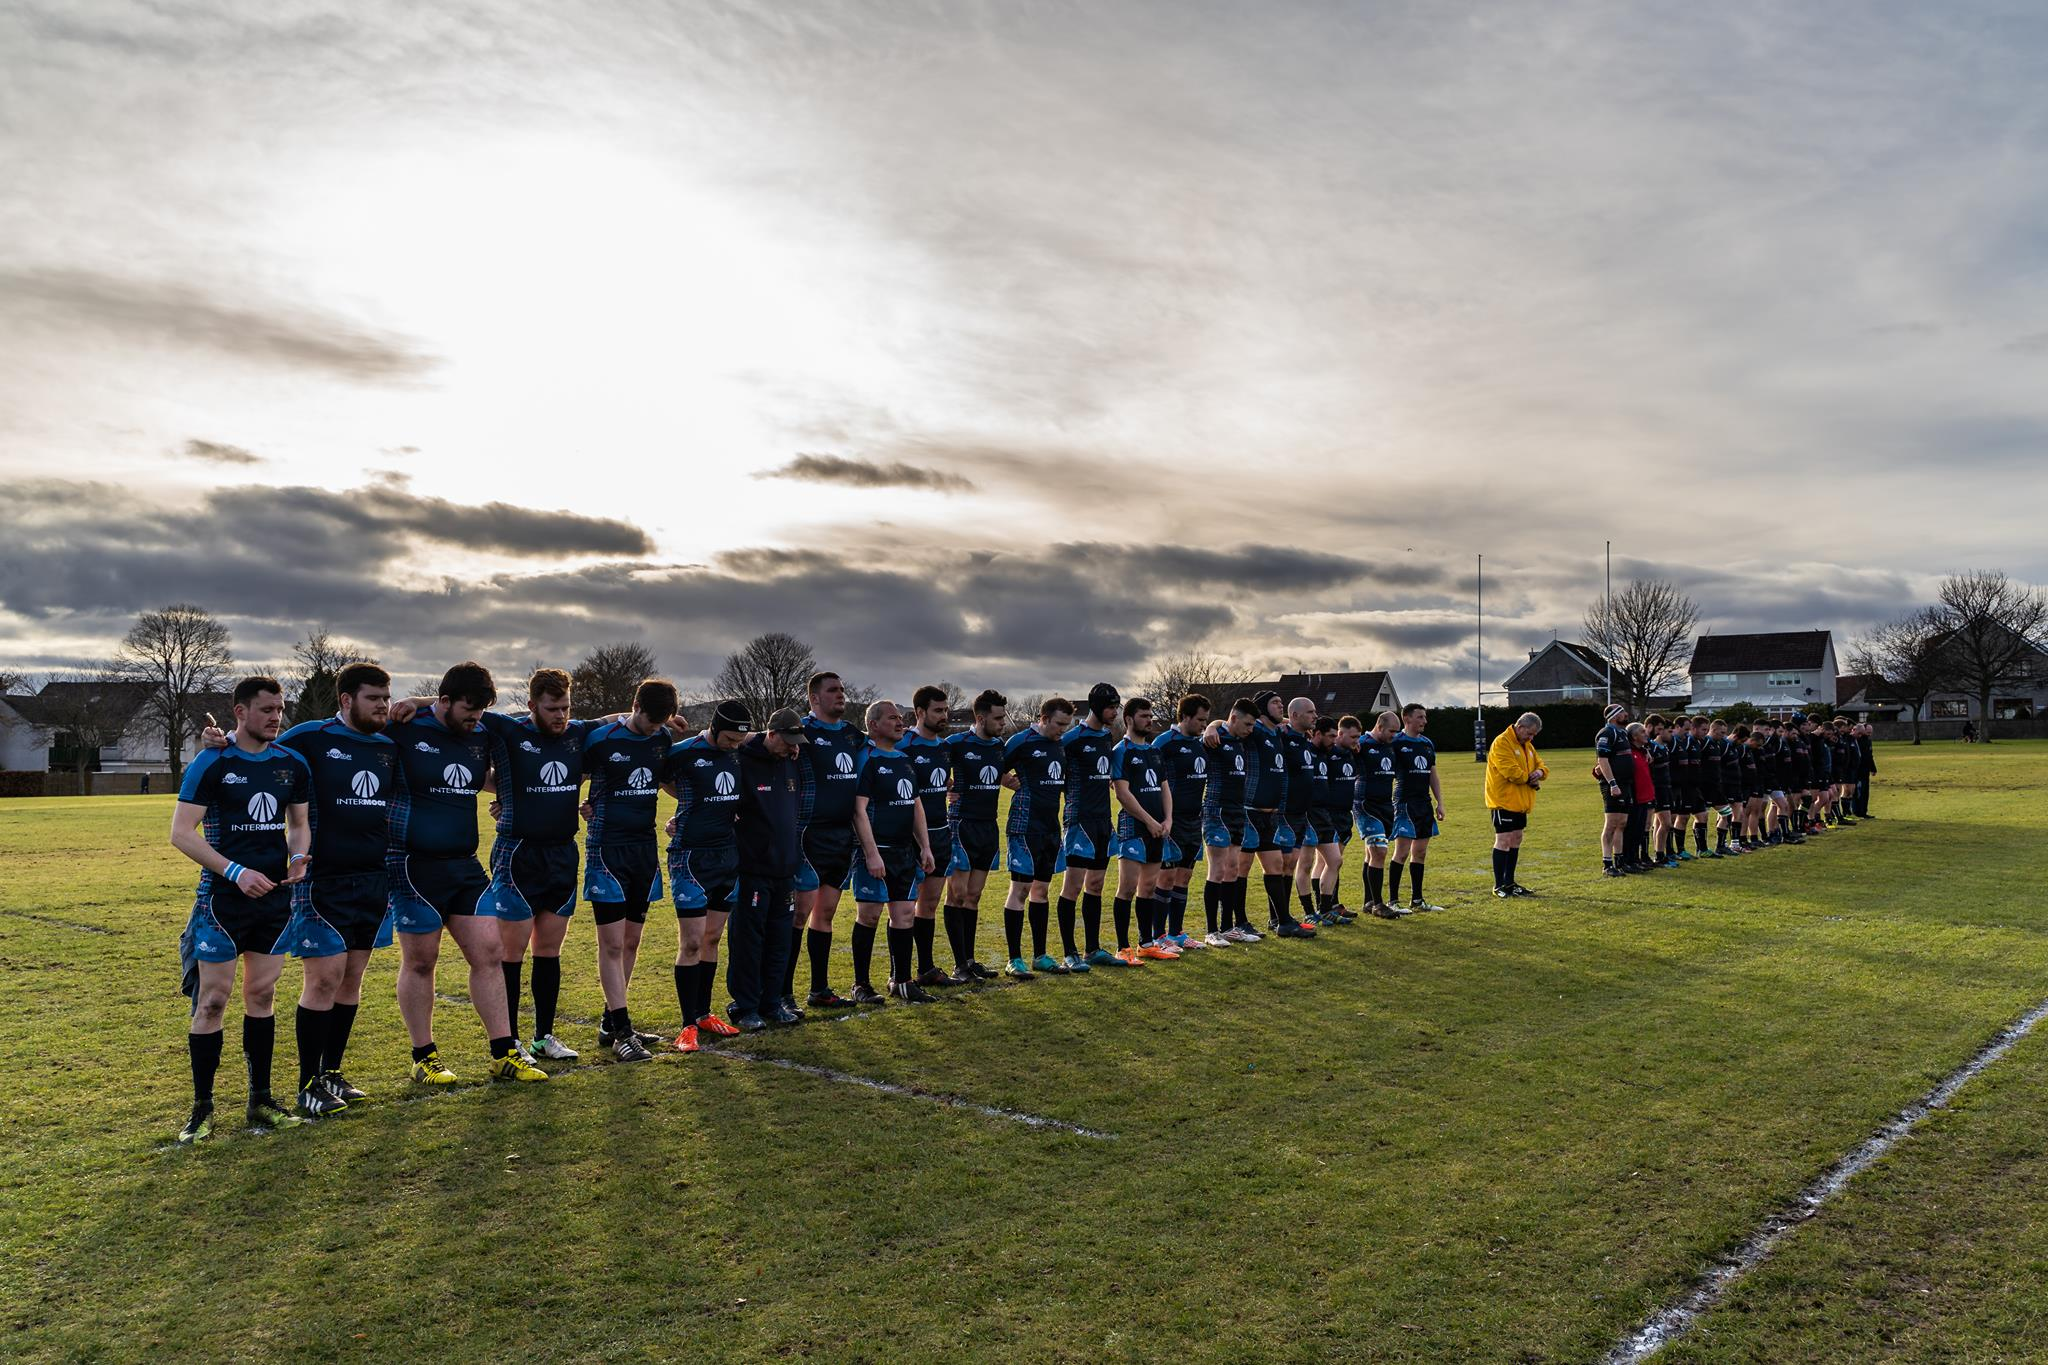 Dyce Rugby Club has raised more than £1,000 for the Dyce Food Bank